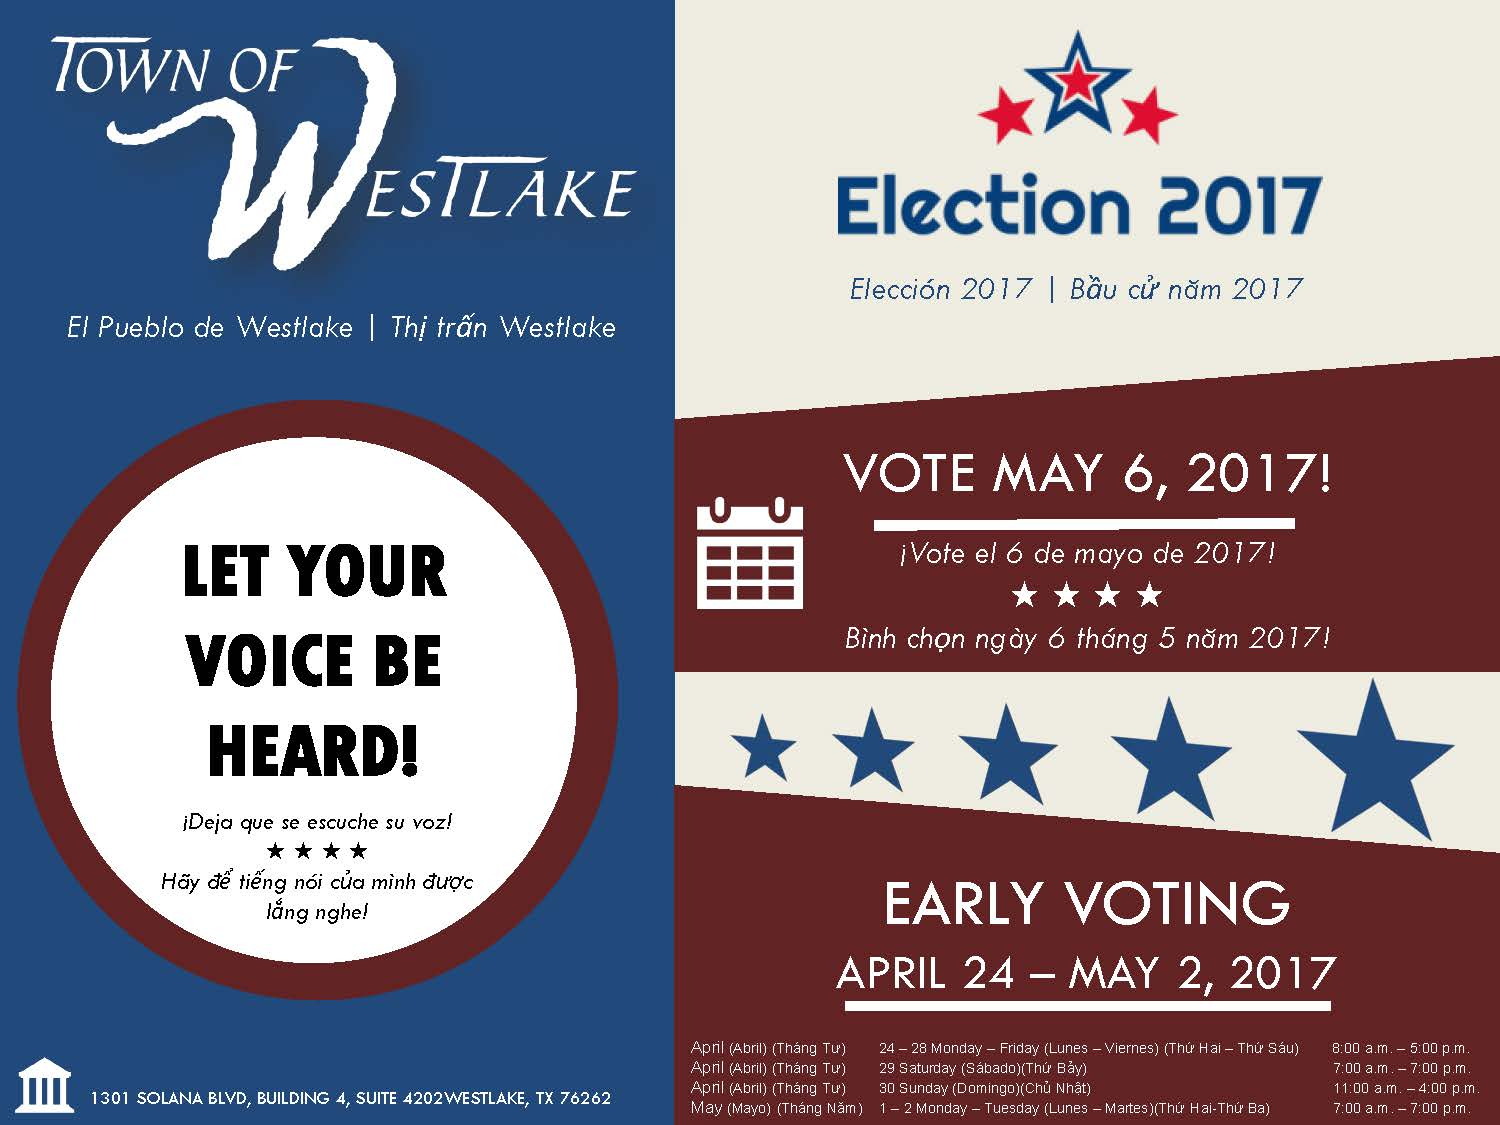 2017 Early Voting schedule